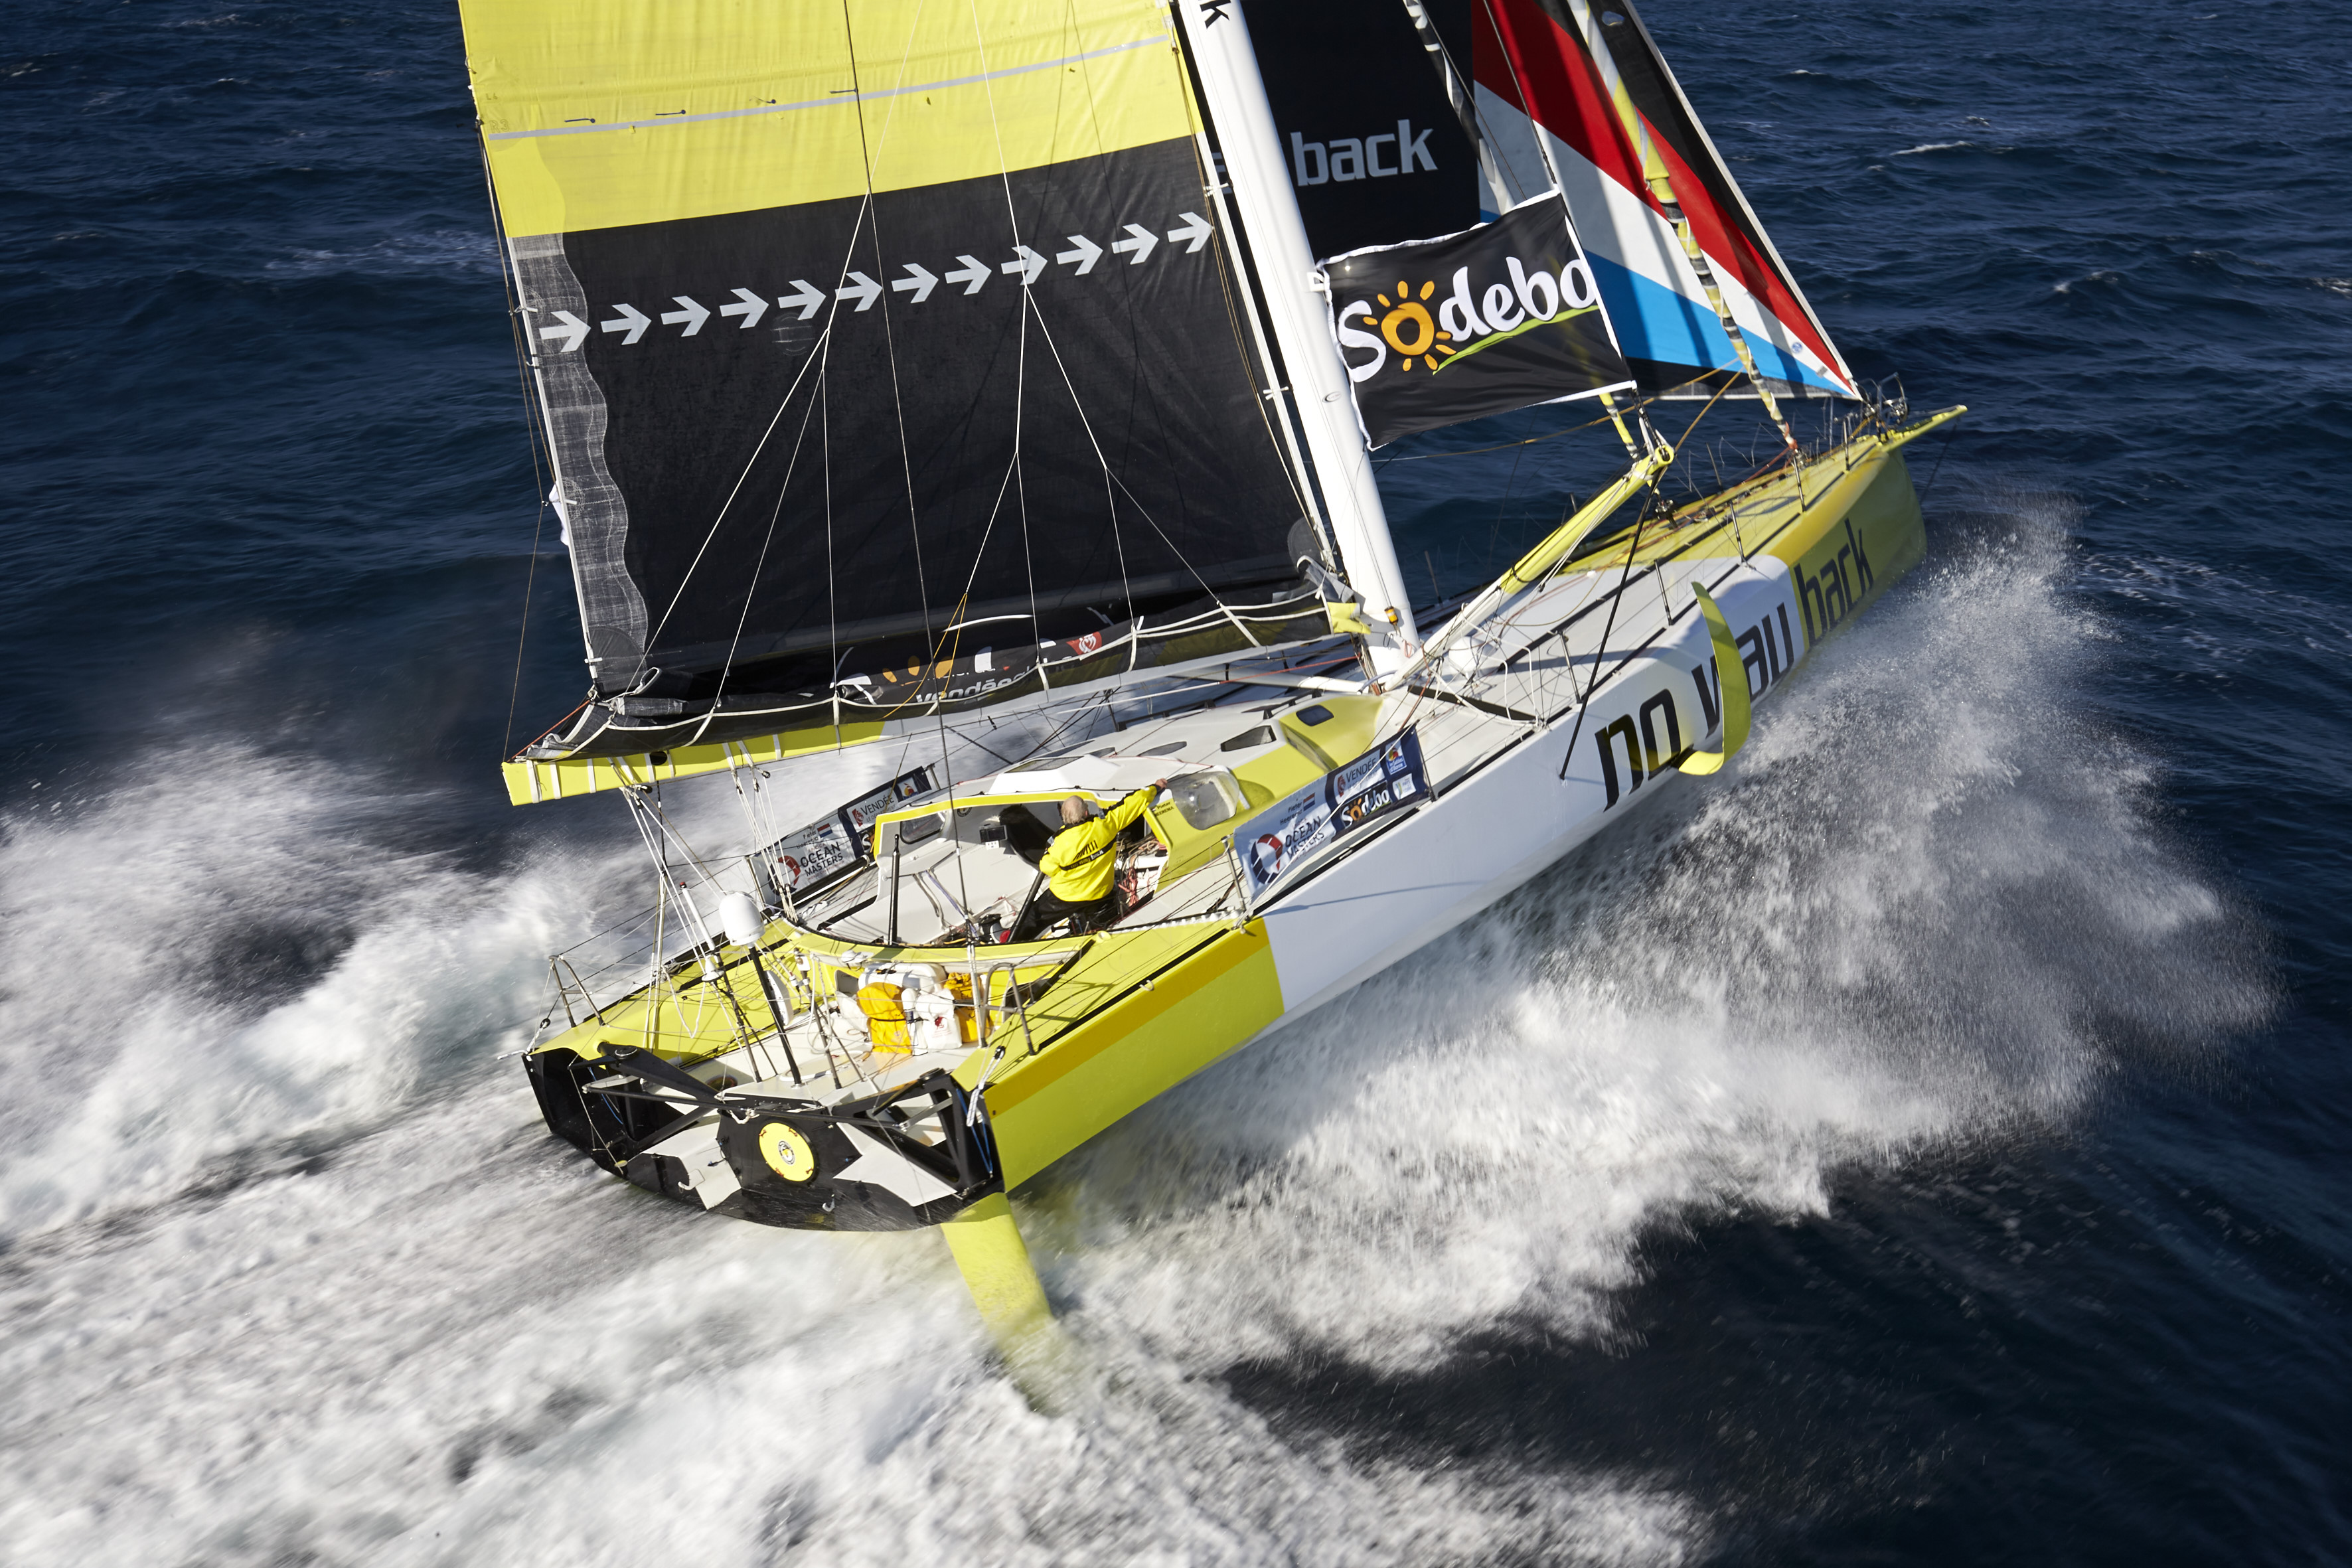 Vendée Globe 2016/2017 - No Way Back - Pieter Heerema (NED)